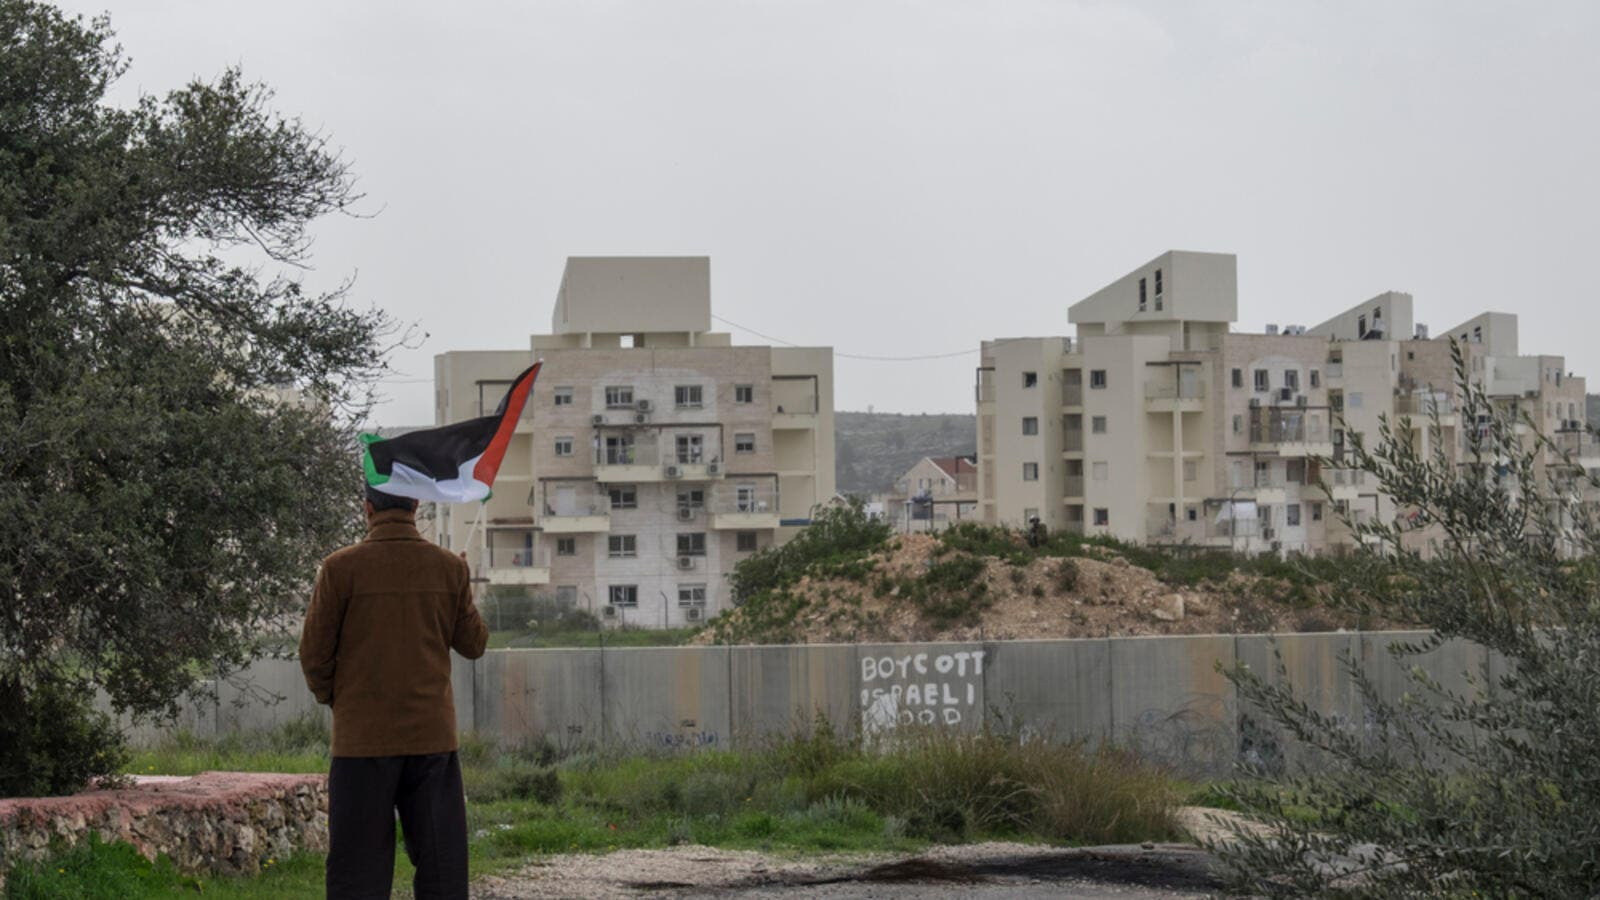 A Palestinian protester stands near the West Bank Barrier holding a flag as a form of protest in Bilin, West Bank, Palestine. (Shutterstock/ File Photo)